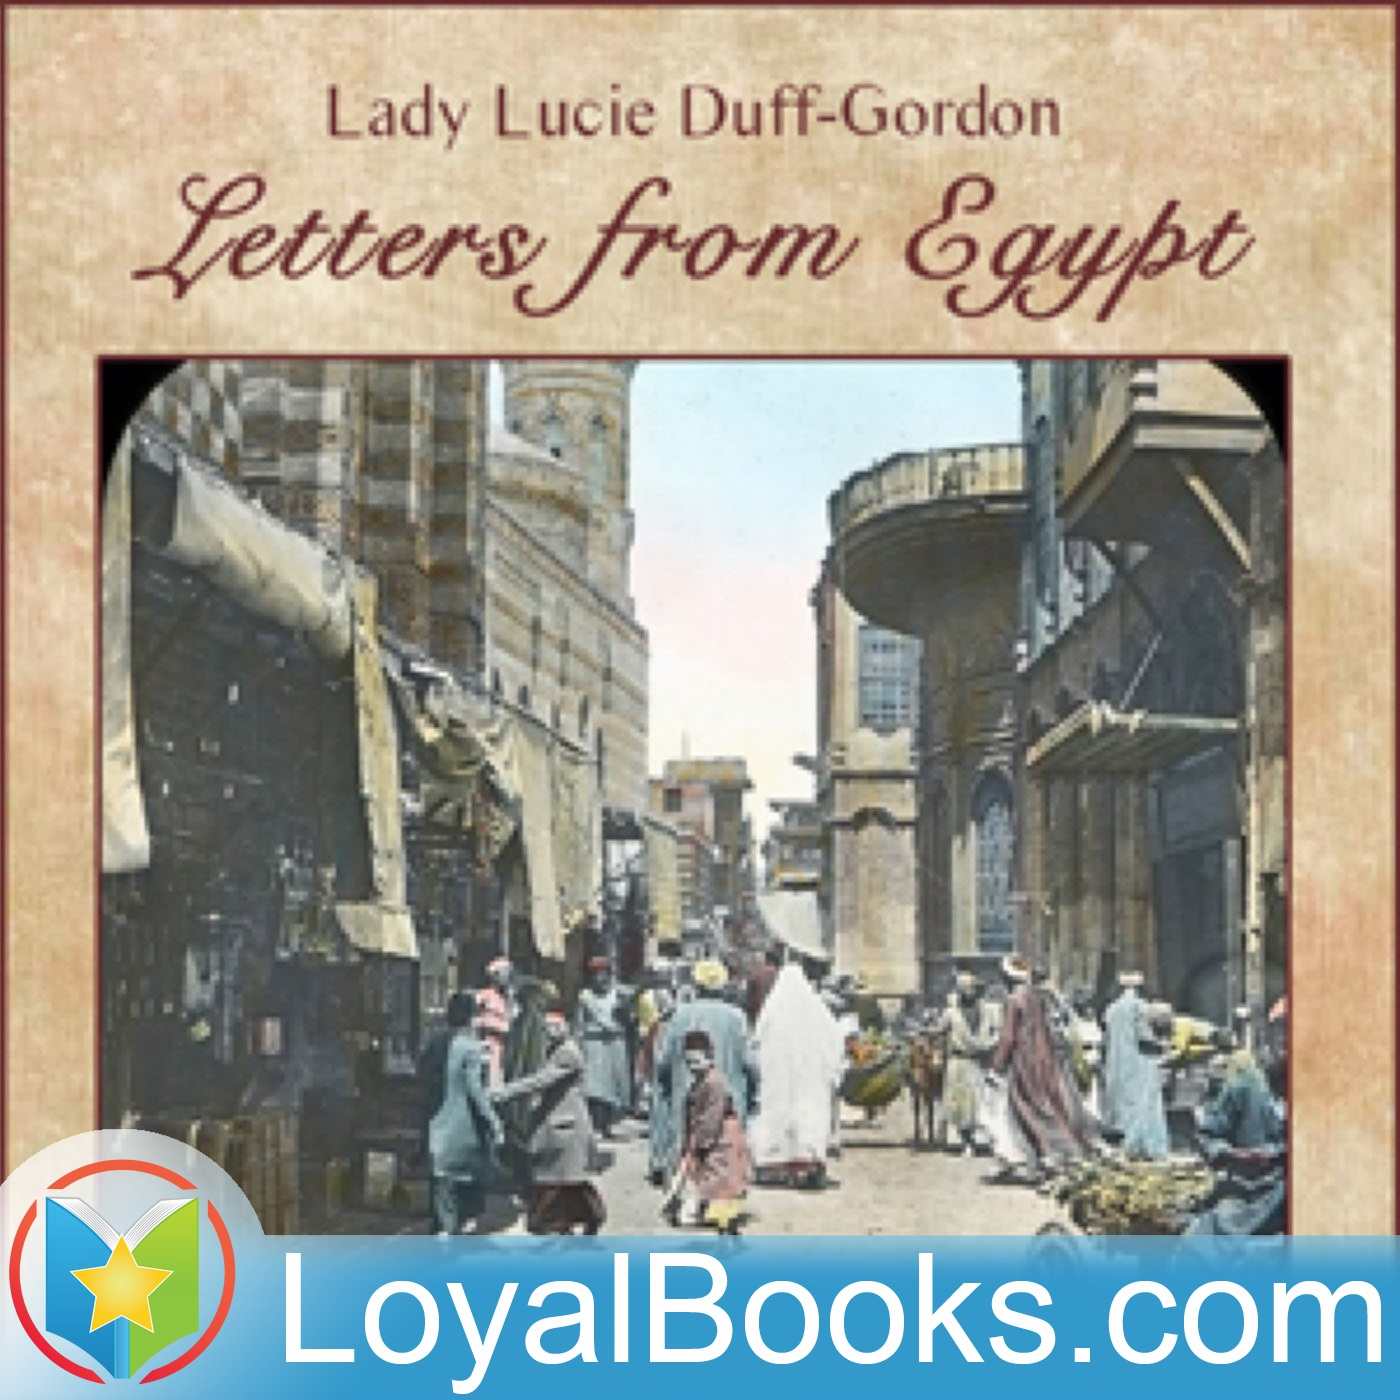 <![CDATA[Letters from Egypt by Lady Lucie Duff-Gordon]]>